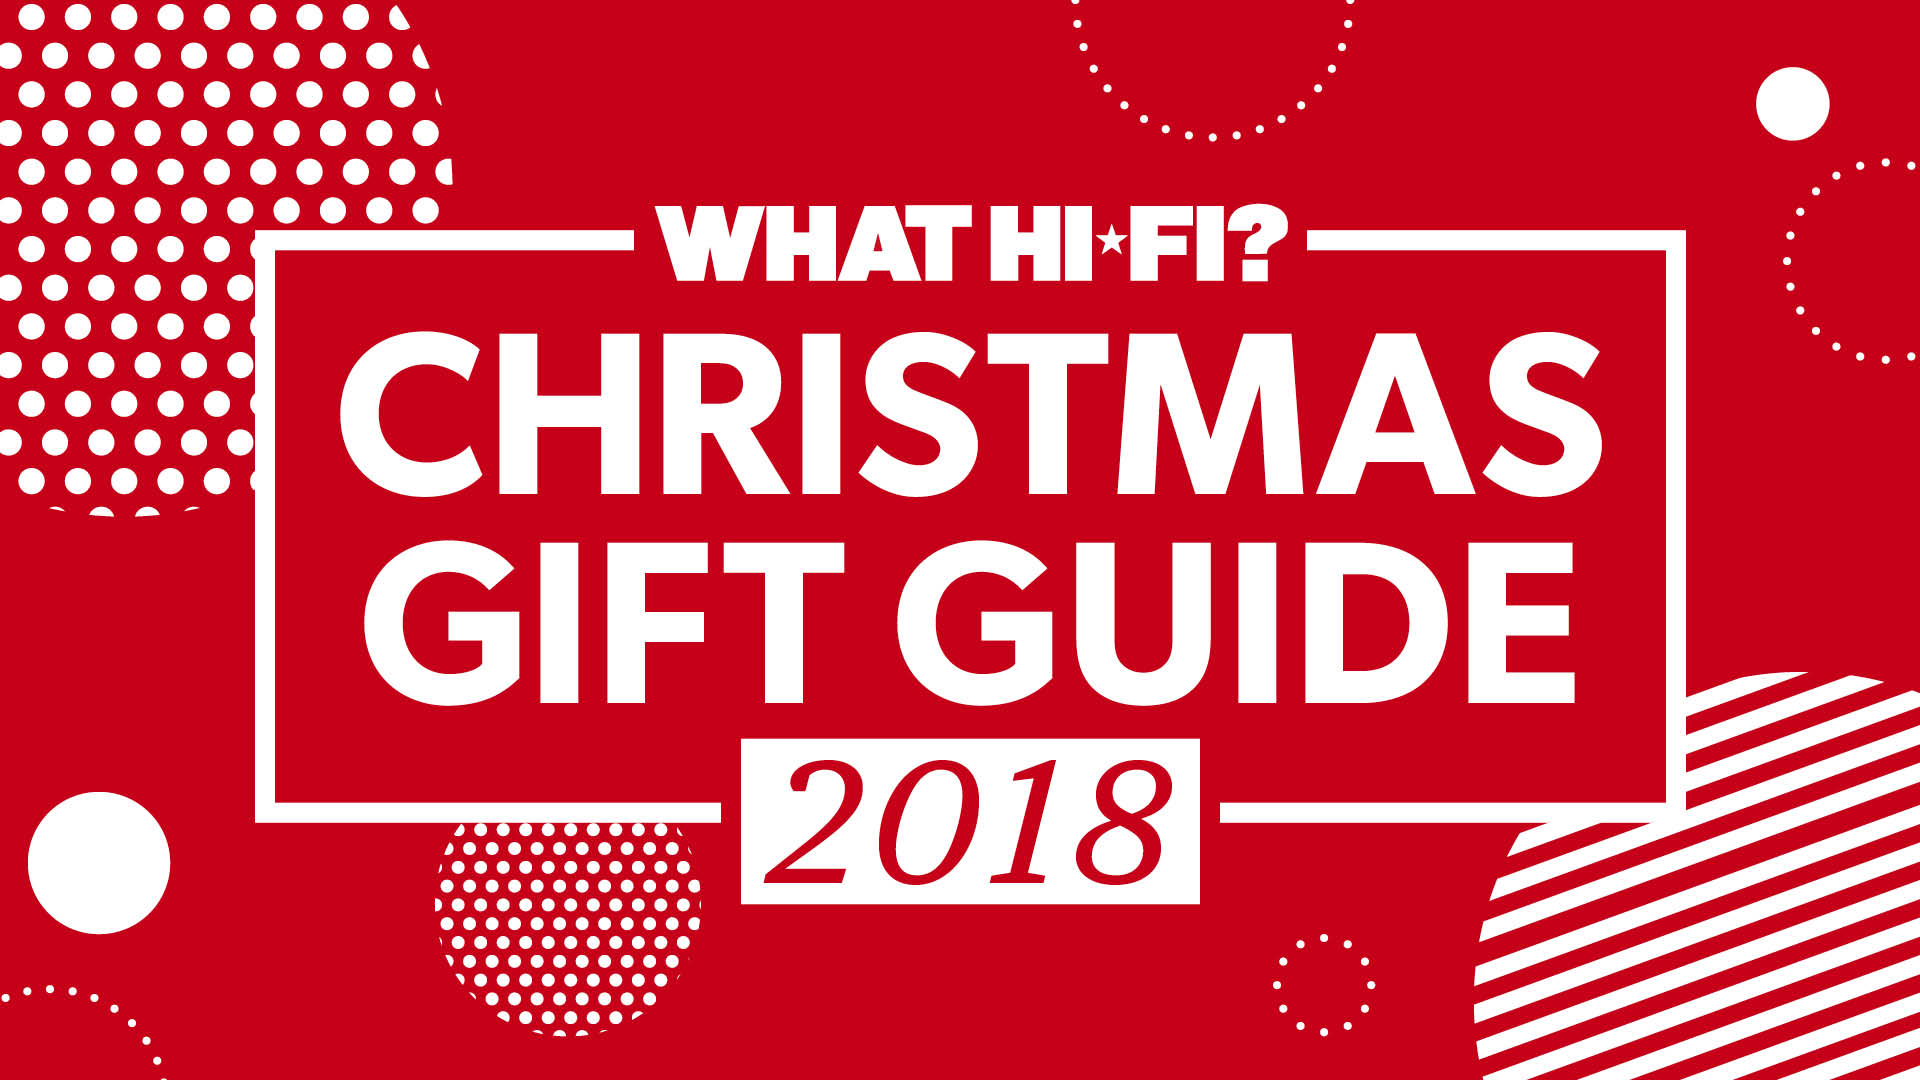 Christmas Gifts Ideas 2018.Christmas Gift Guide 2018 184 Great Gift Ideas For Music